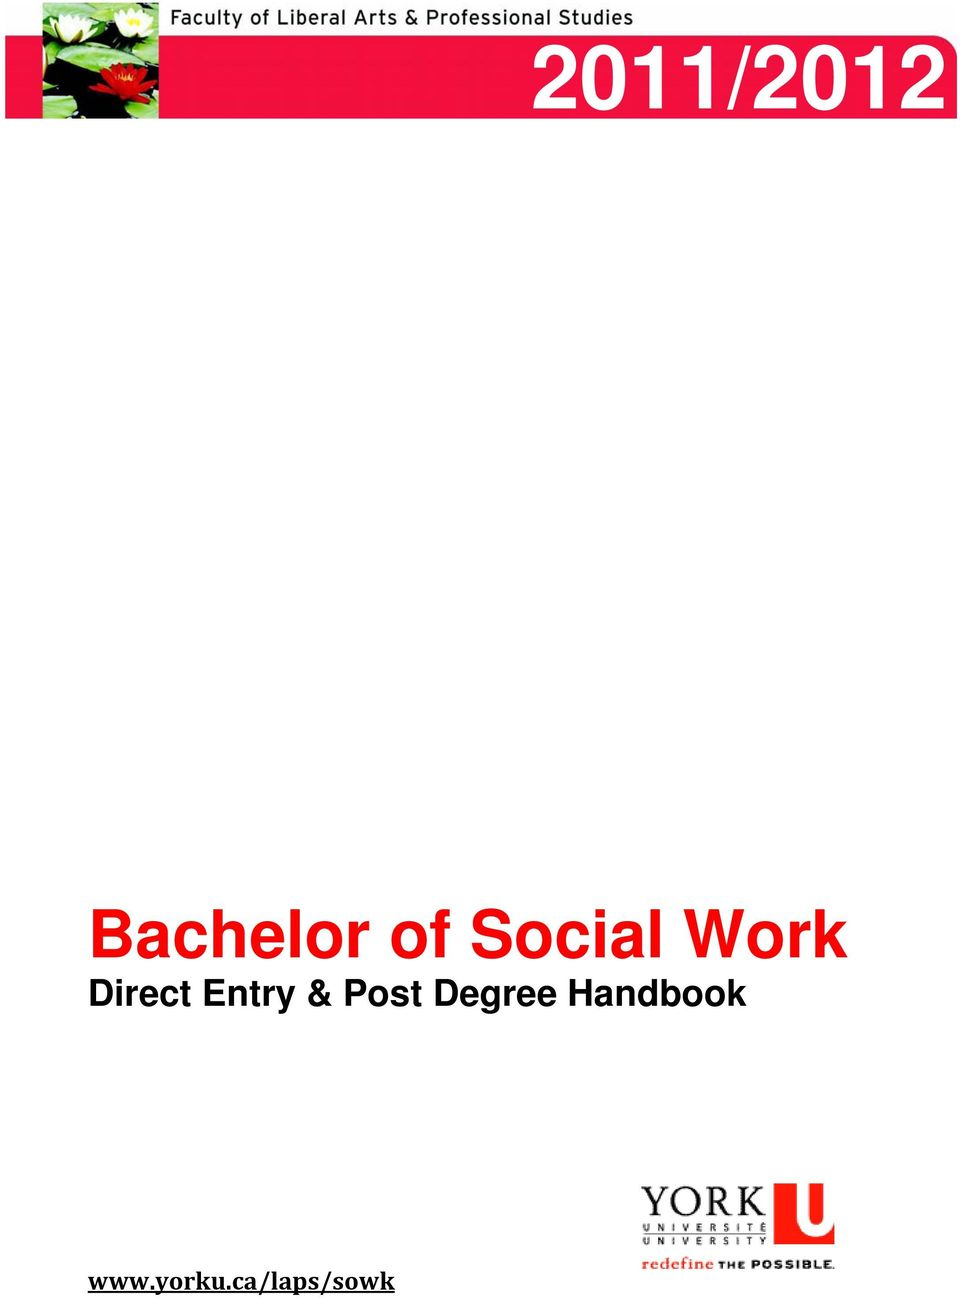 Entry & Post Degree